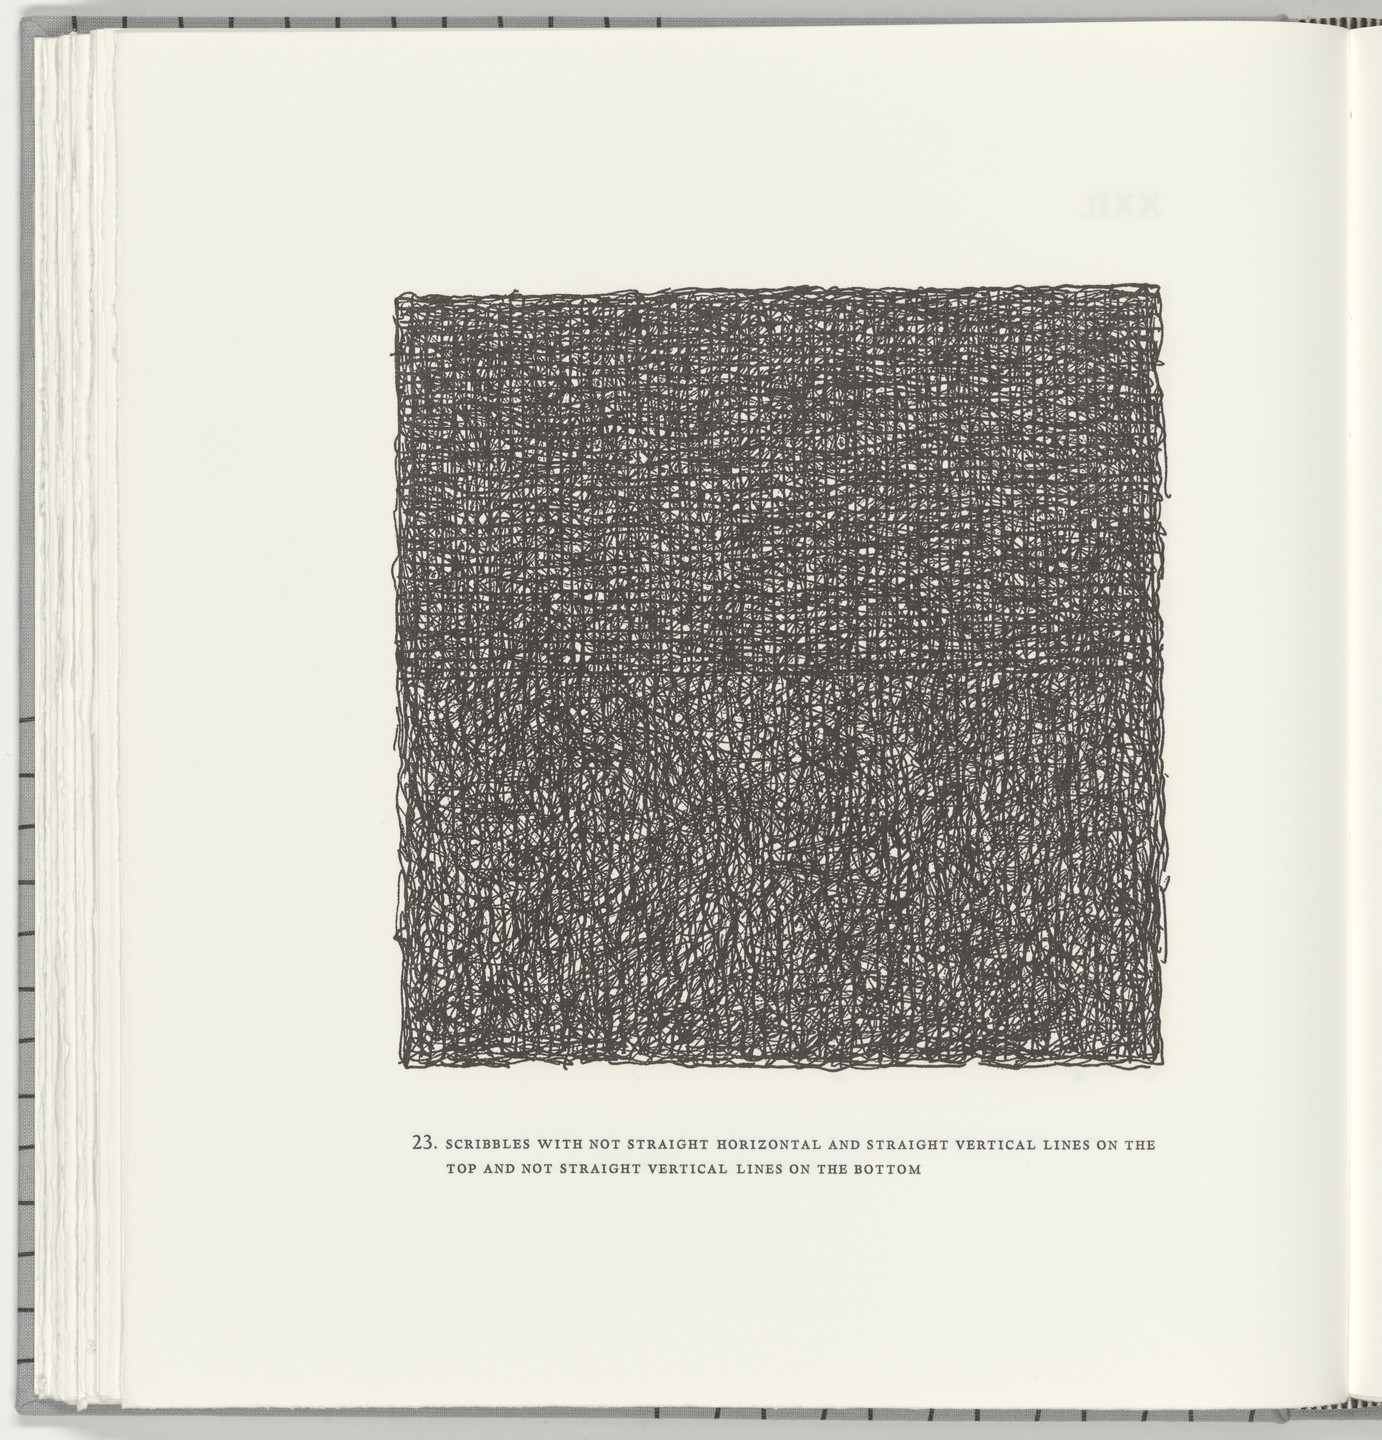 Sol LeWitt. Scribbles with Not Straight Horizontal and Straight Vertical Lines on the Top and Not Straight Vertical Lines on the Bottom (plate 23) from Squarings. 2003